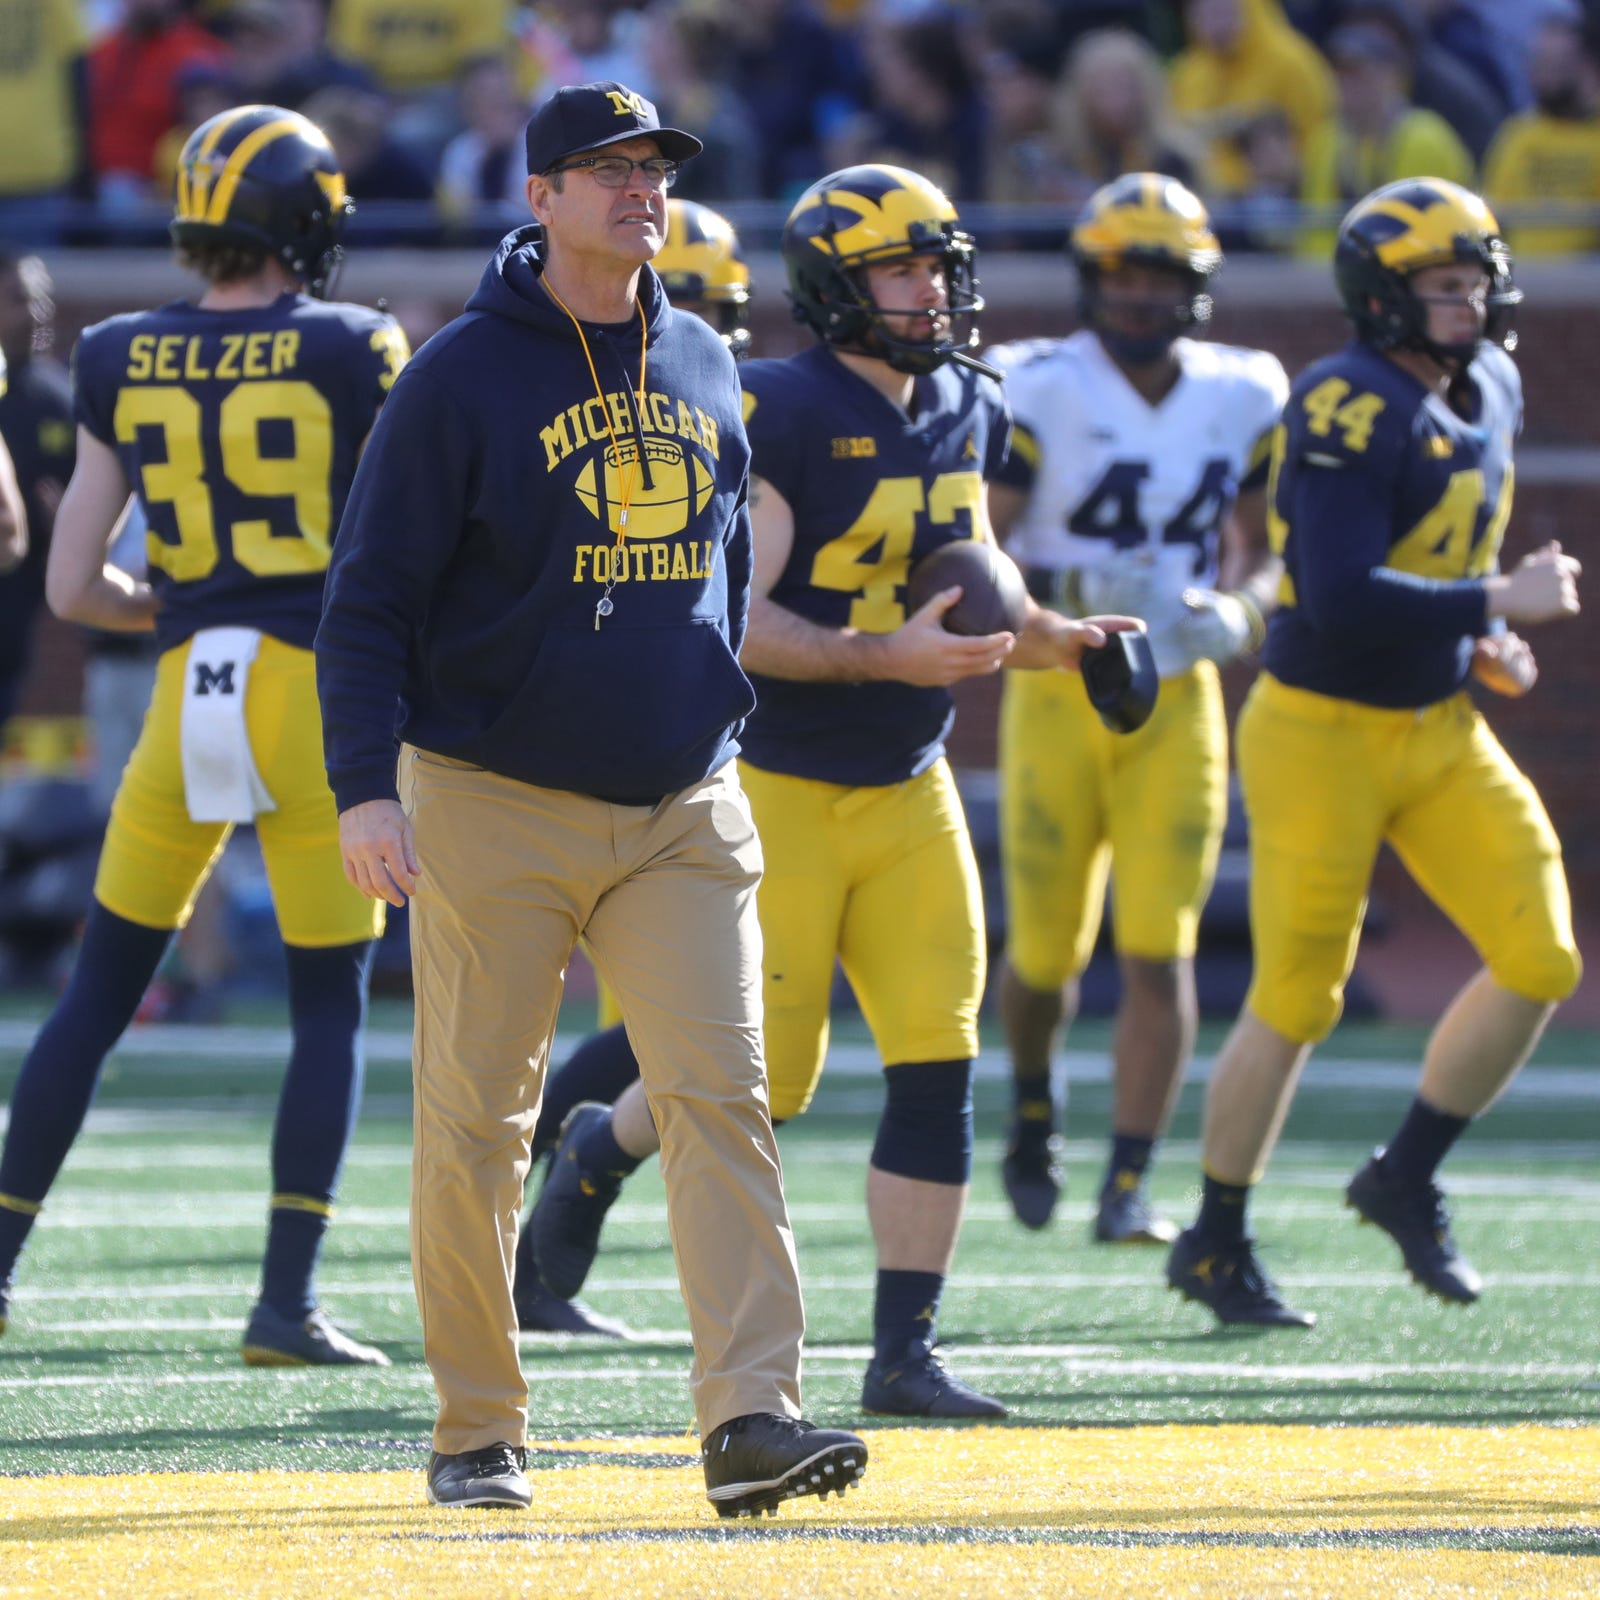 Michigan football picks up 3rd commitment from St. Frances Academy for 2020